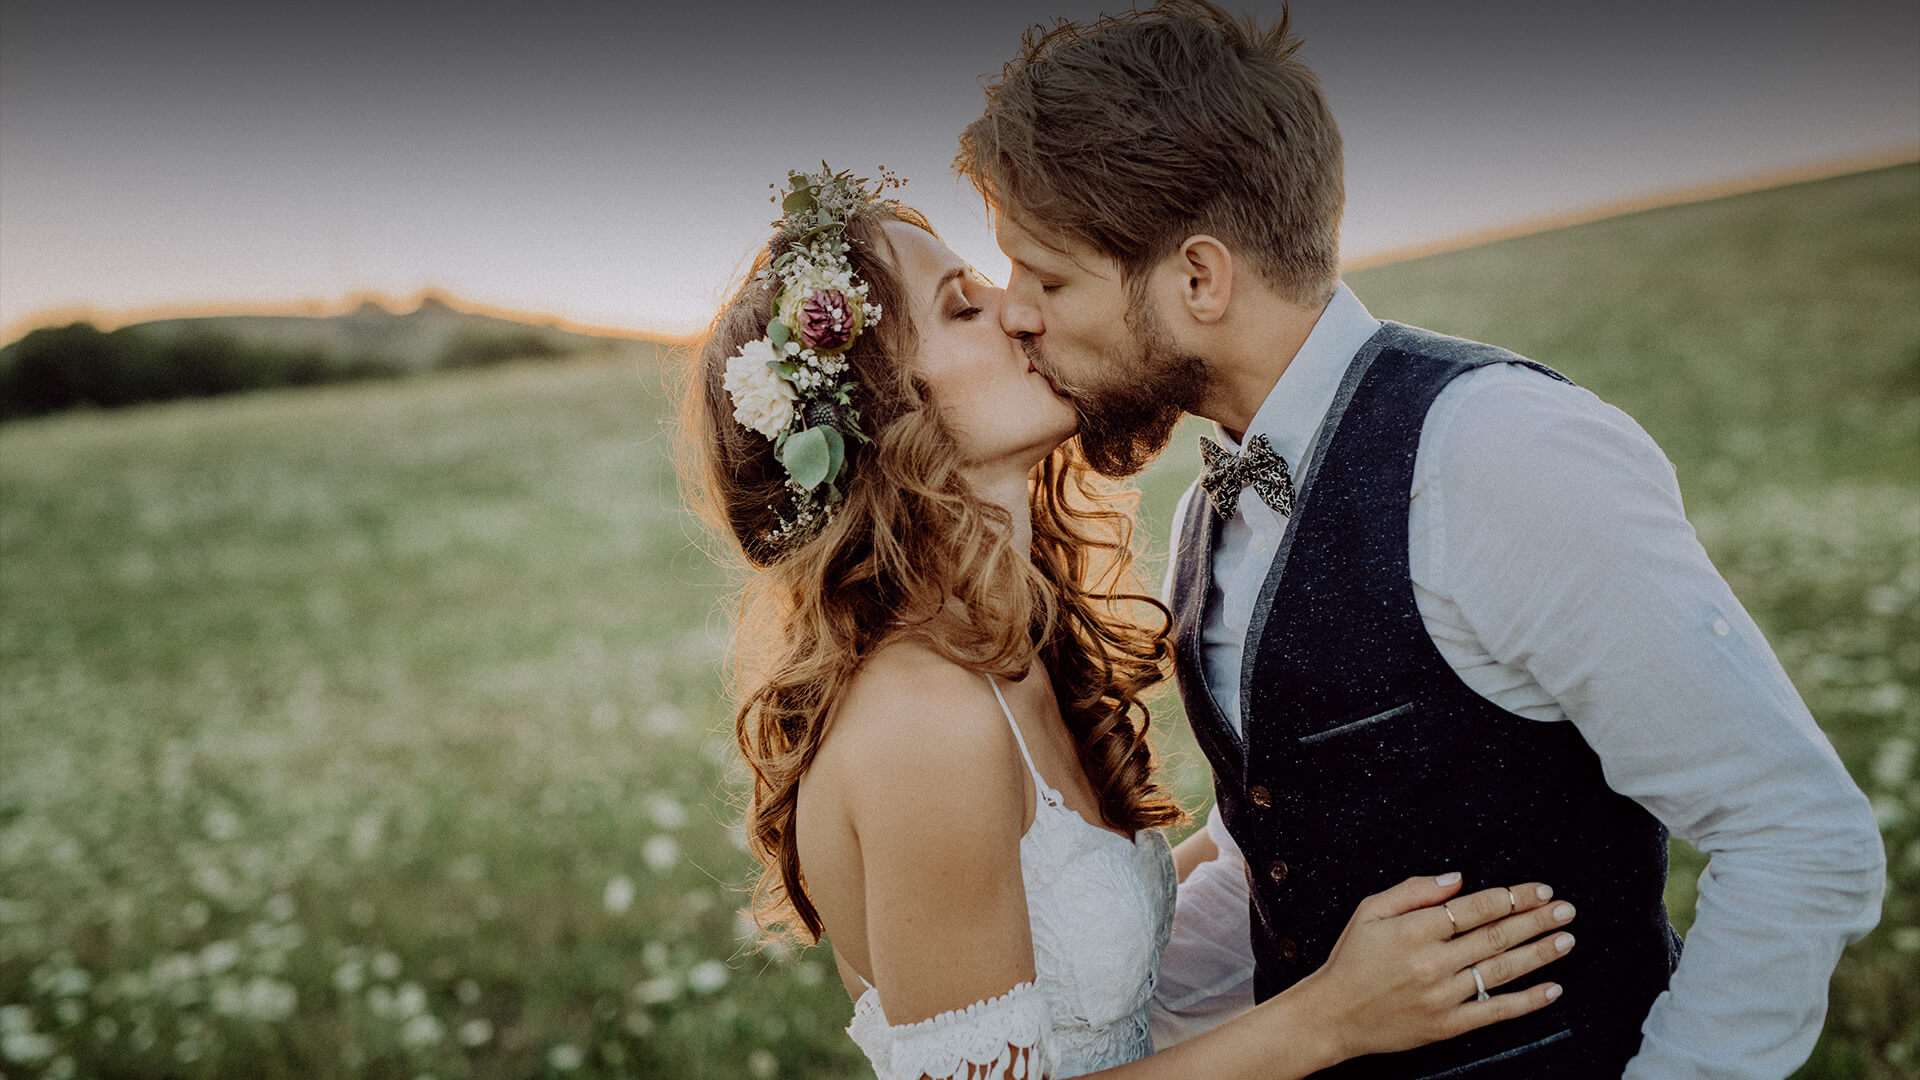 Love and Marriage - Shauna Rowe Celebrant